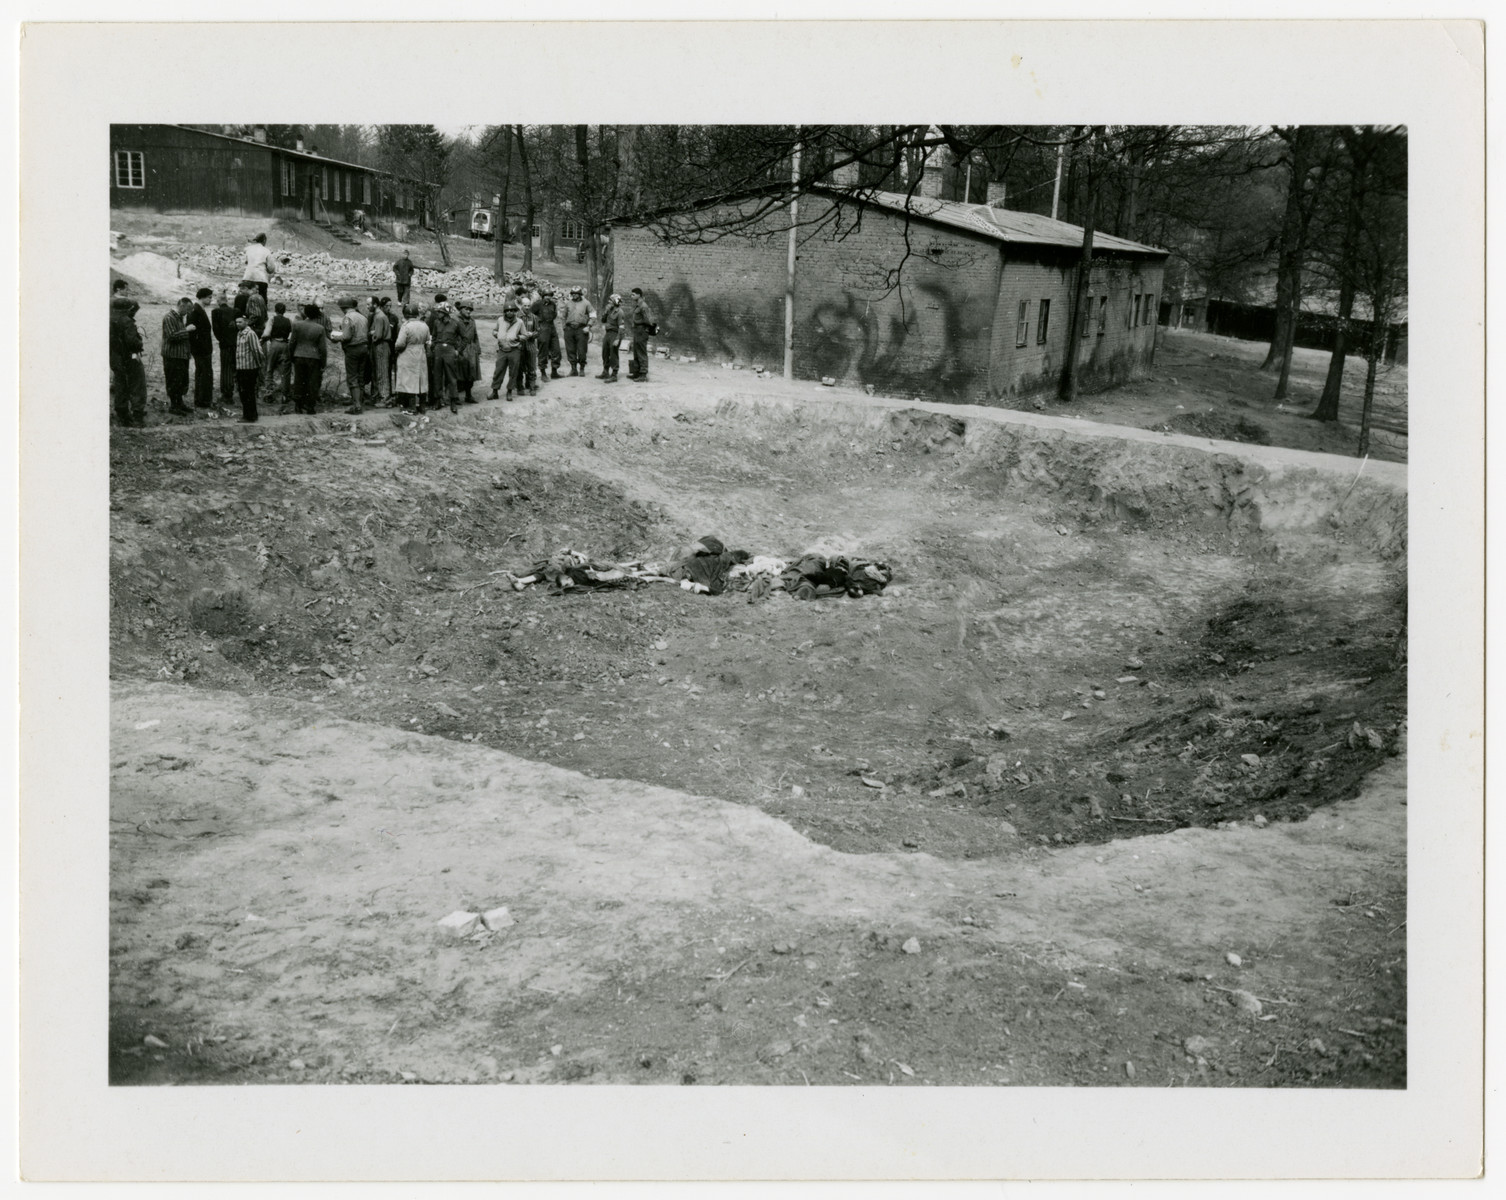 Corpses lie in a sunken mass grave outside a barrack of the Langenstein-Zwieberge concentration camp while survivors gather nearby.